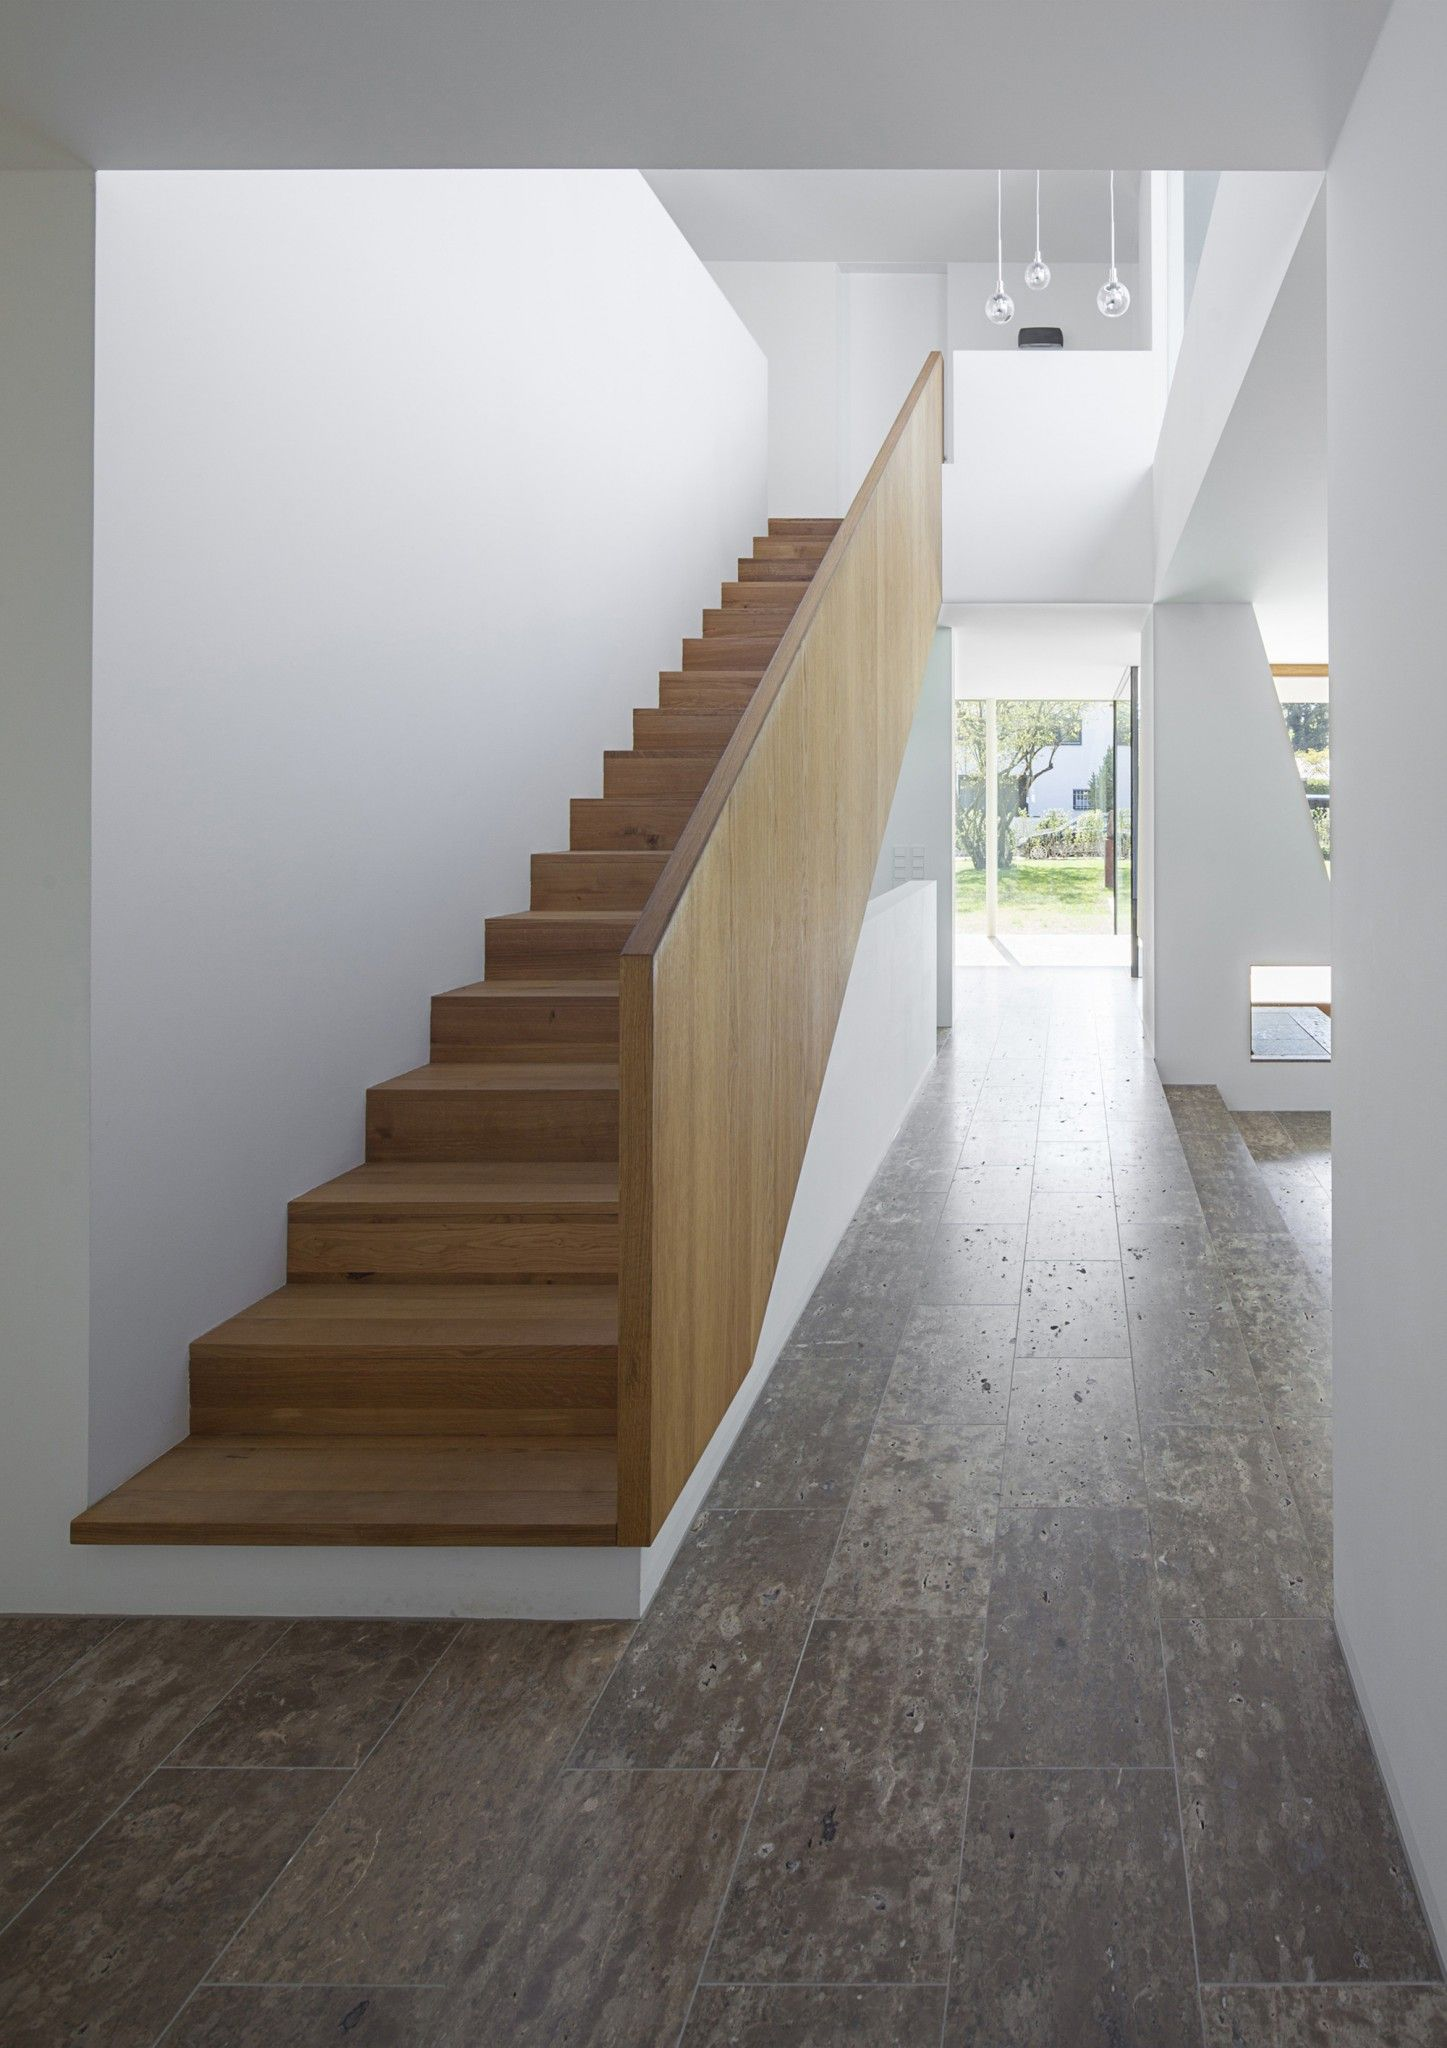 German Minimalistic House Brief Overview. Futuristic and minimalistic staircase from the front view